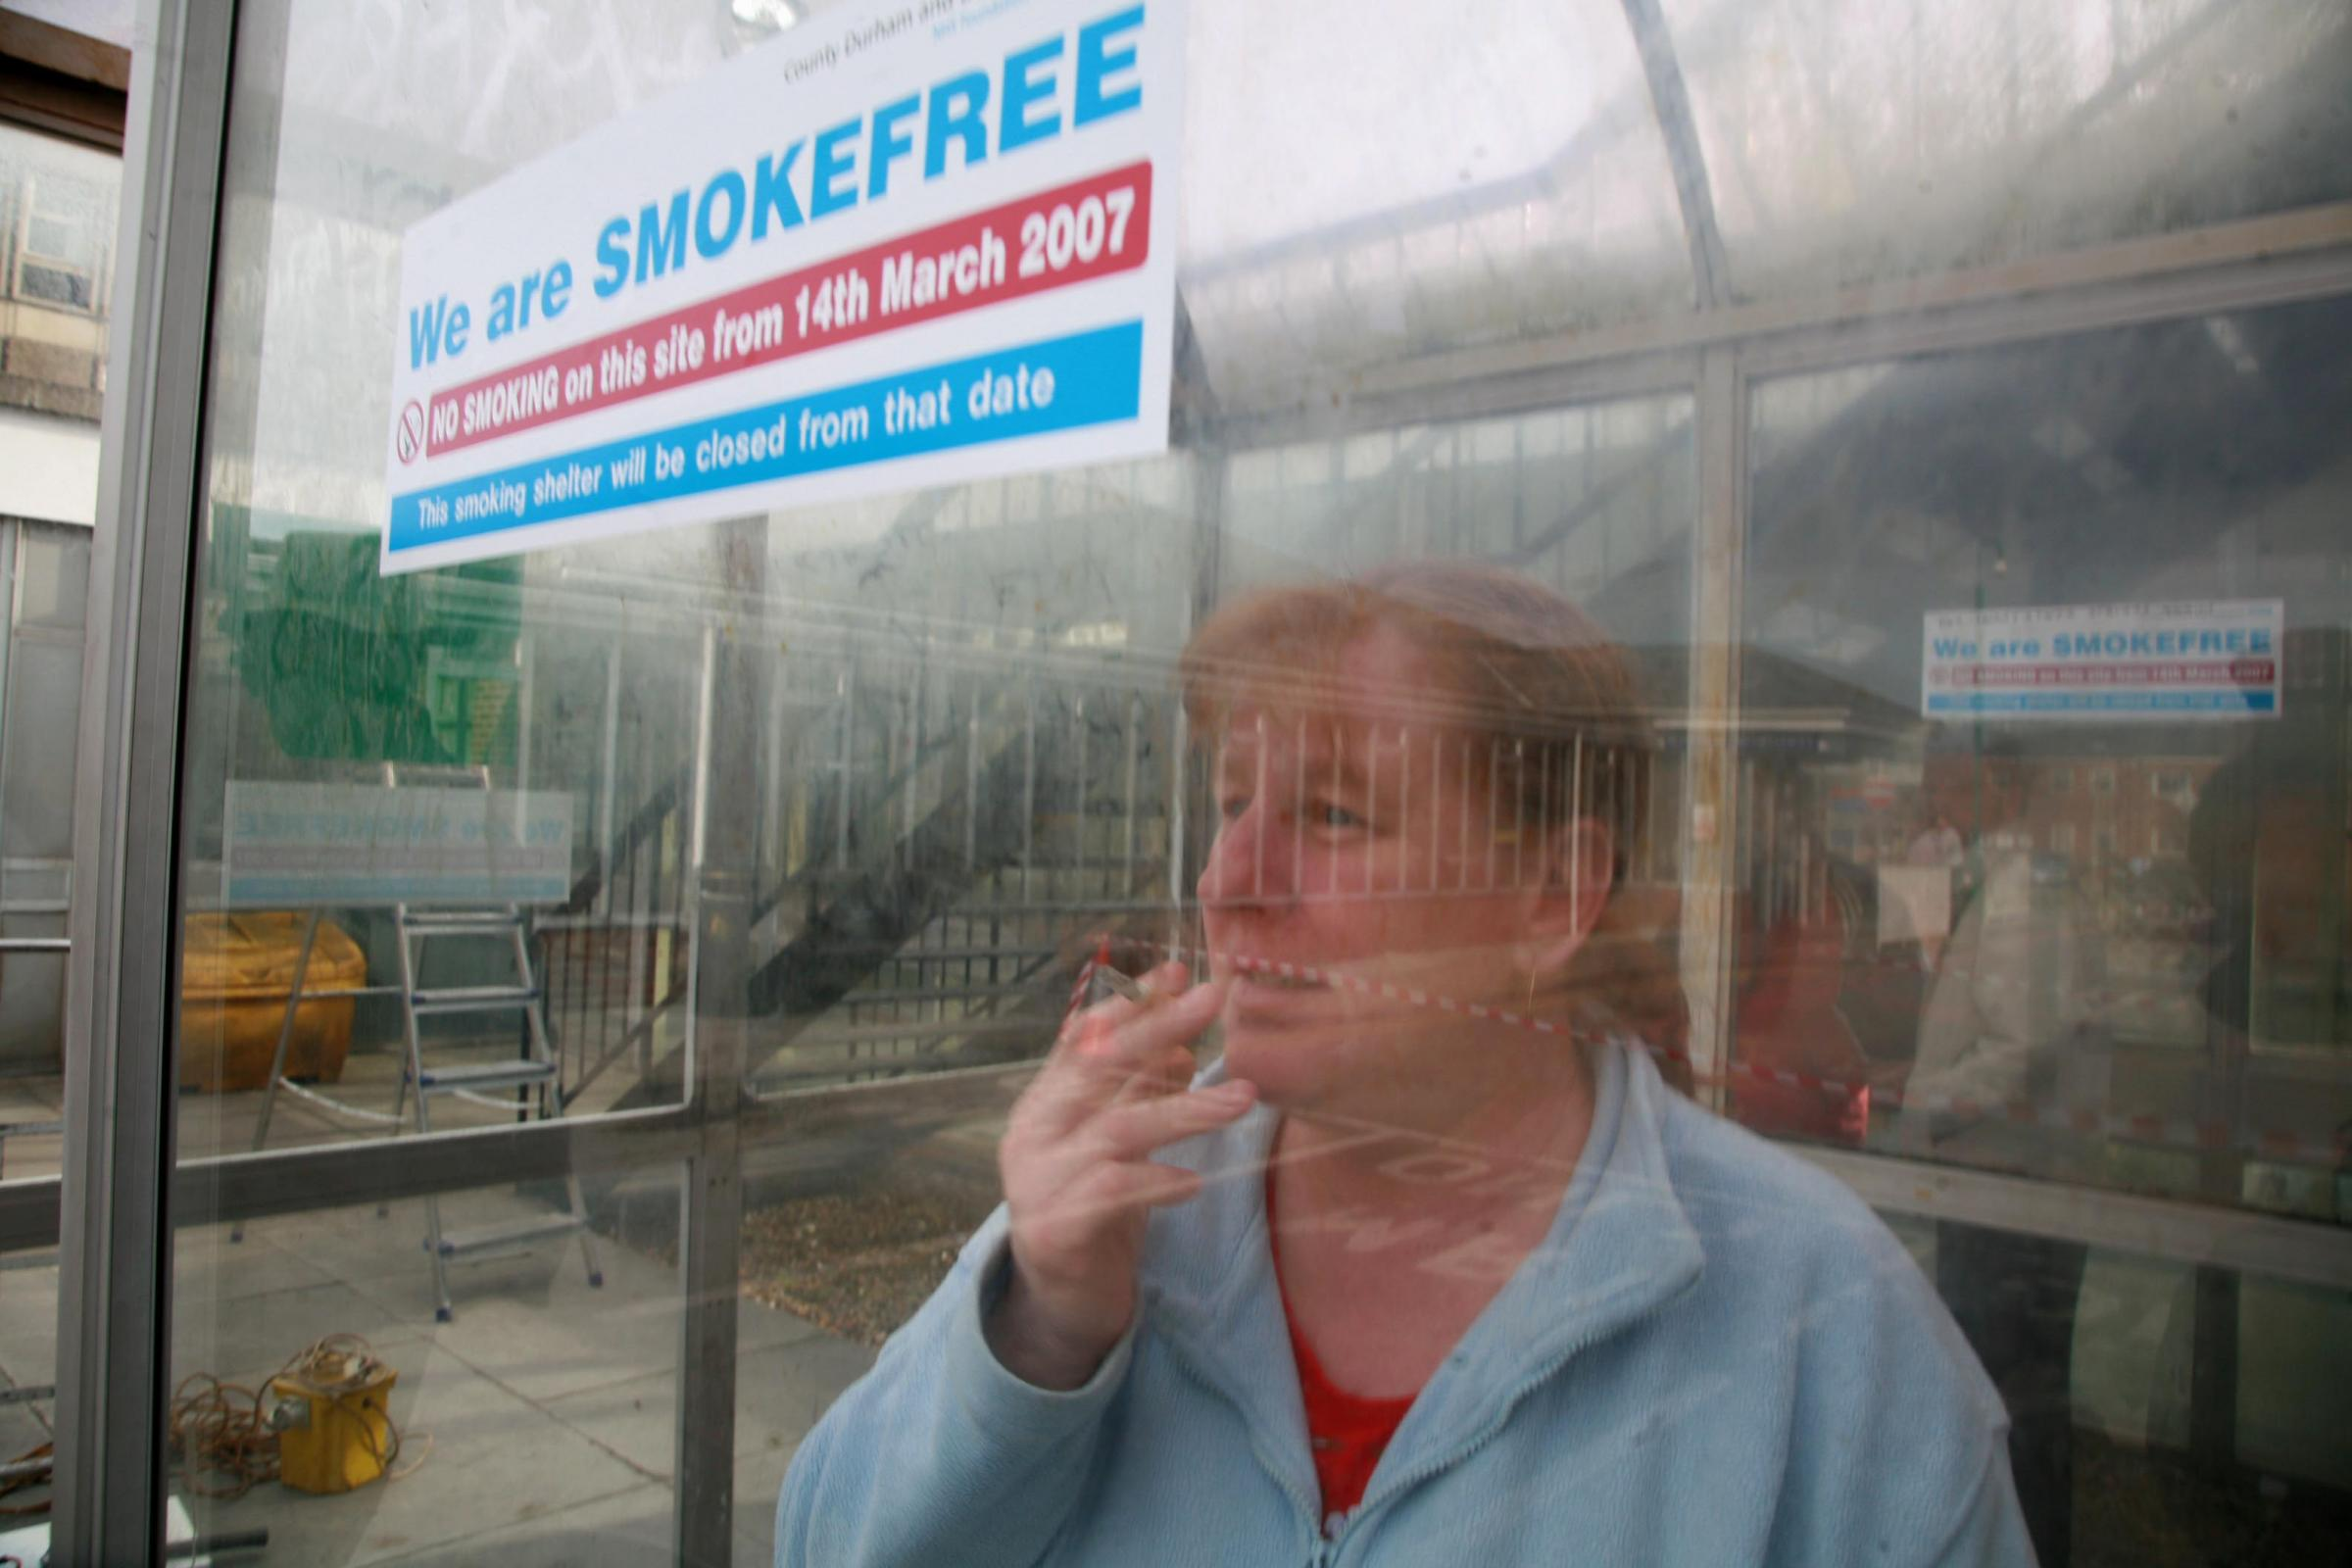 GONE: Andrea Edward takes a last drag in a smoking shelter at Darlington Memorial Hospital before it was removed in 2007